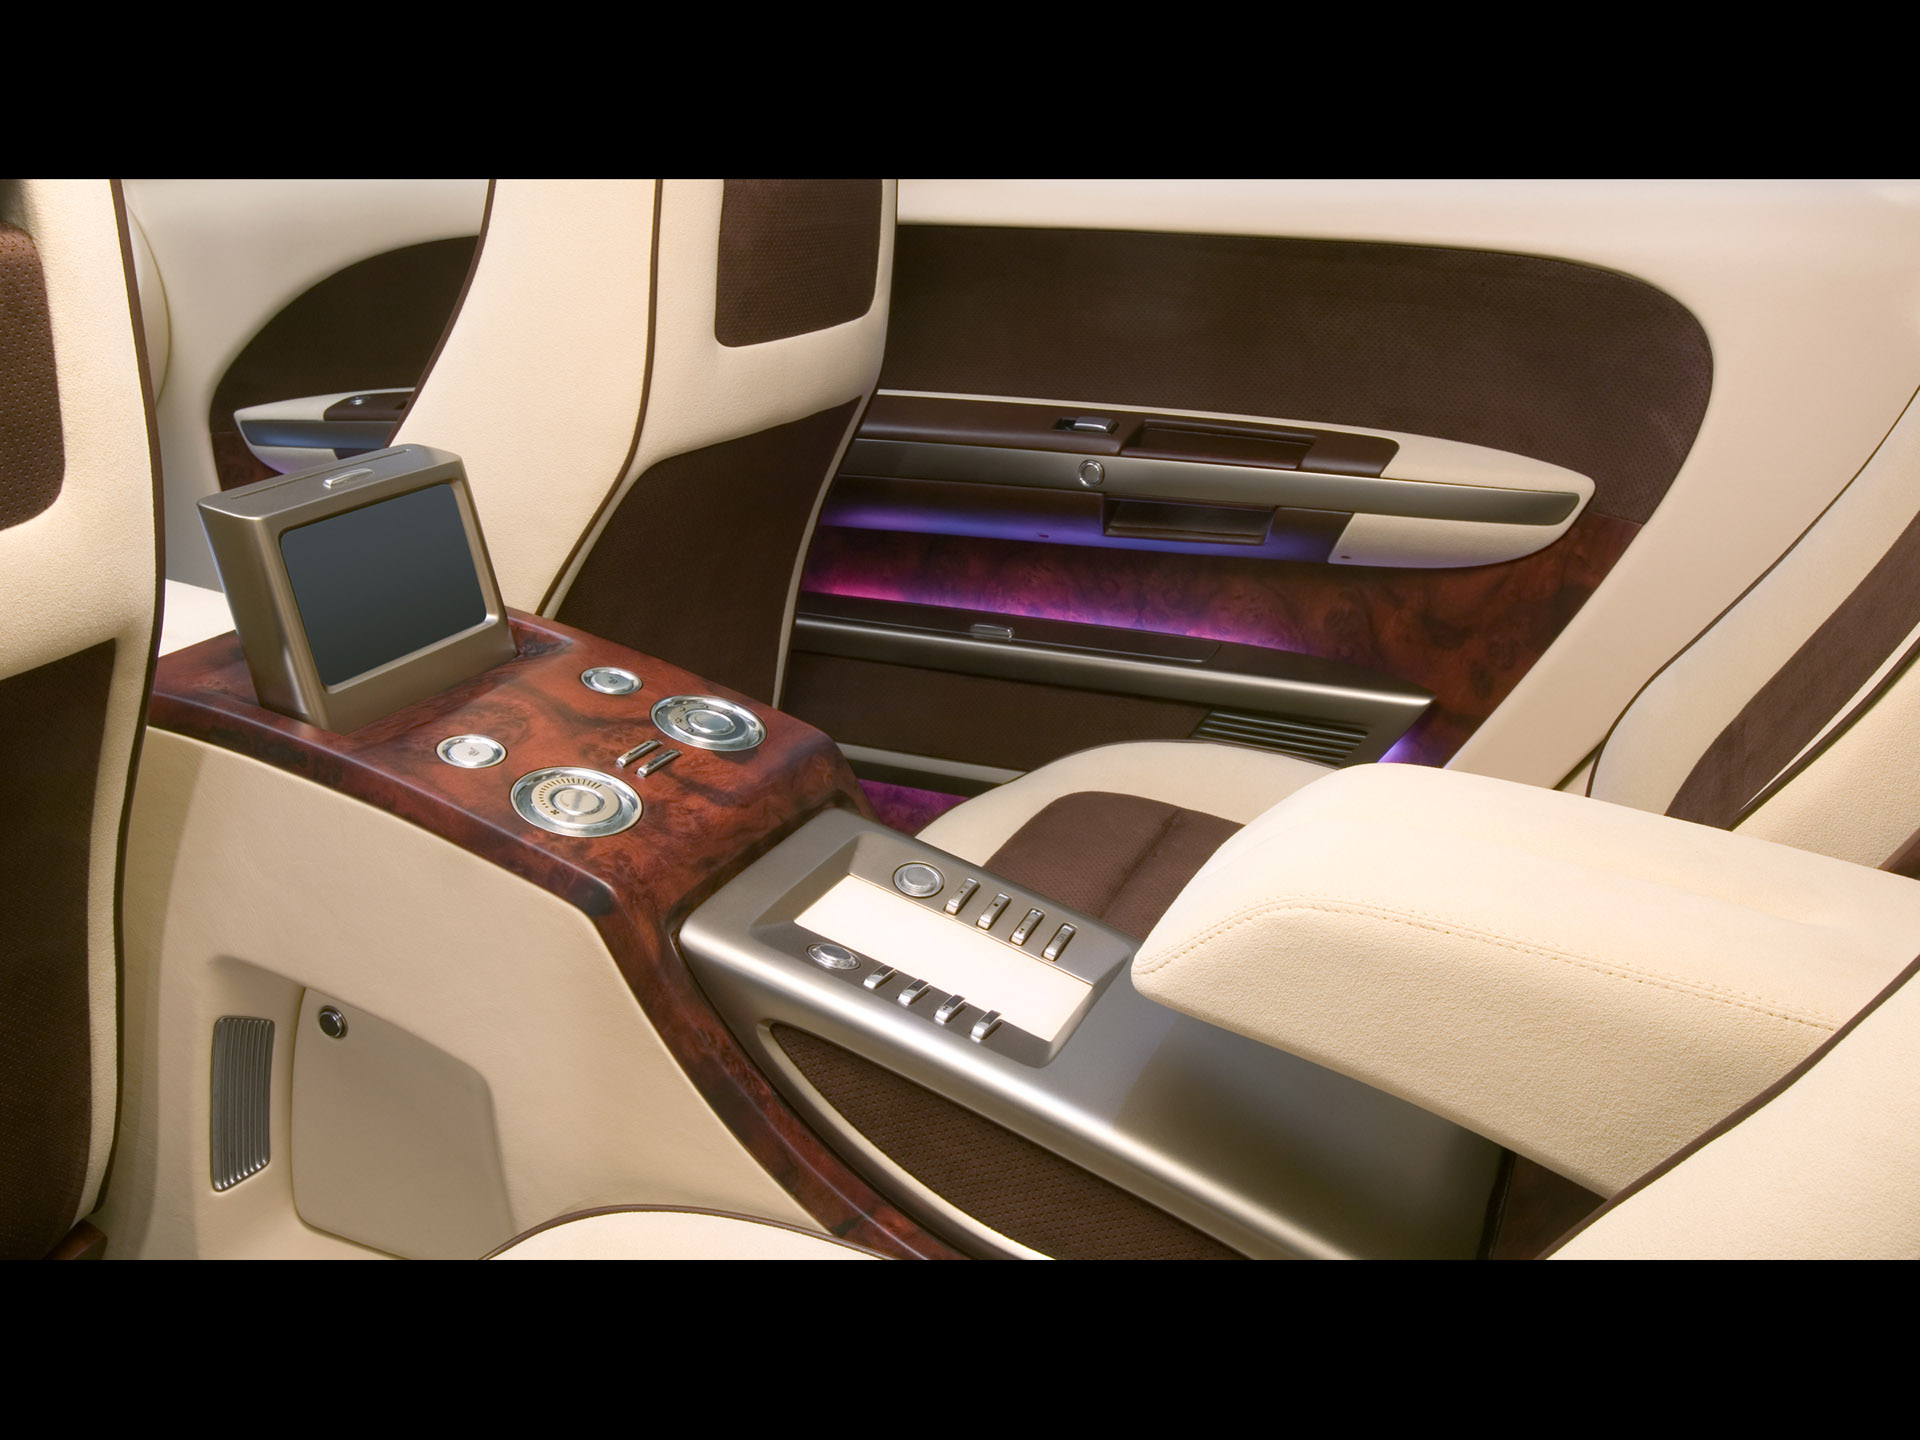 2019 Chrysler Imperial Concept photo - 3